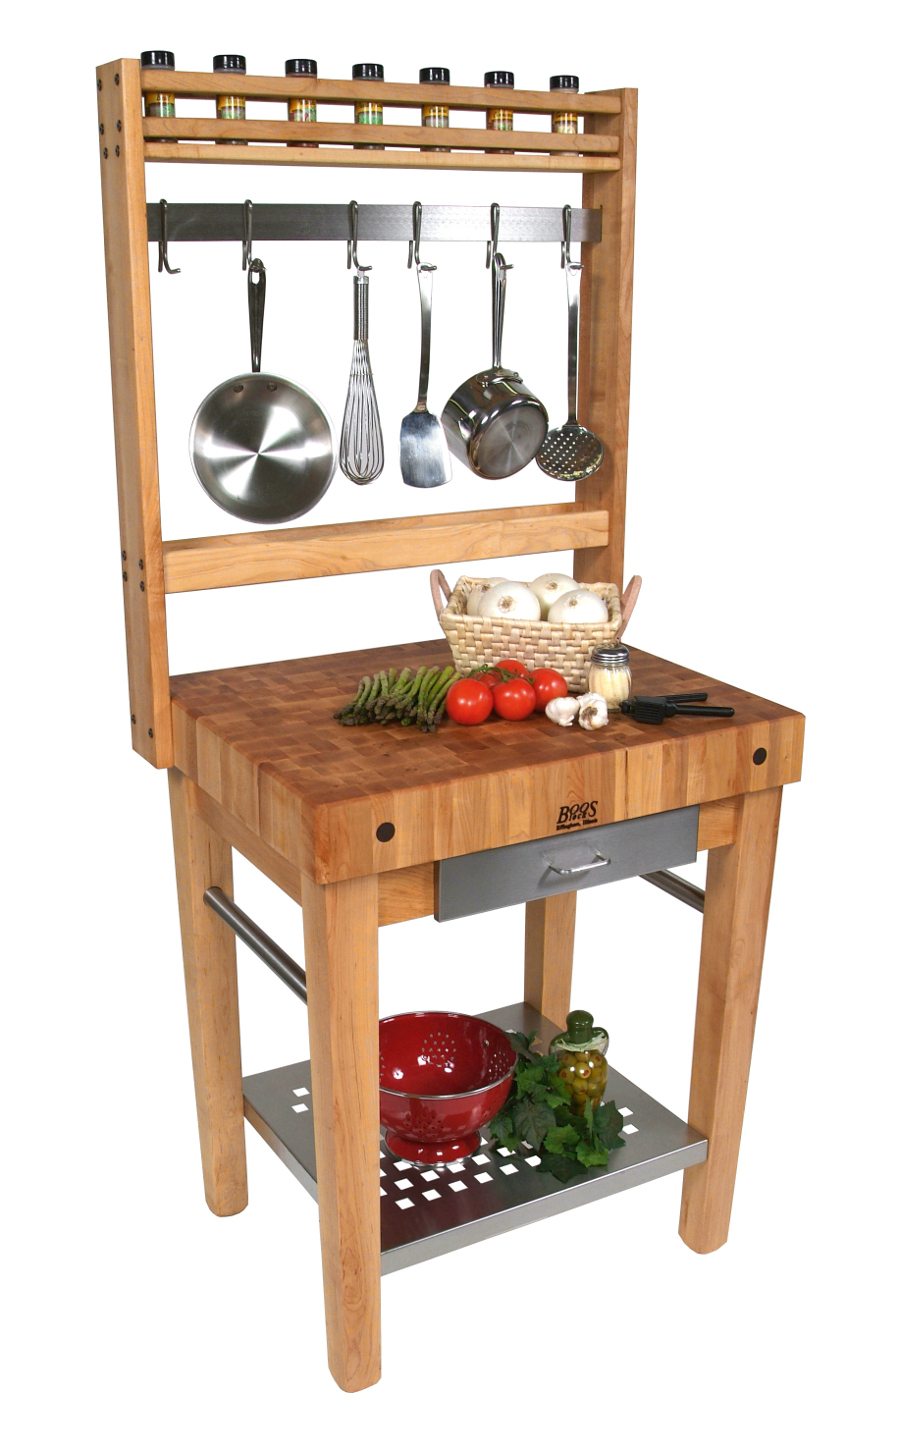 Cucina 4 X 4 john boos cucina premo work station & pot rack